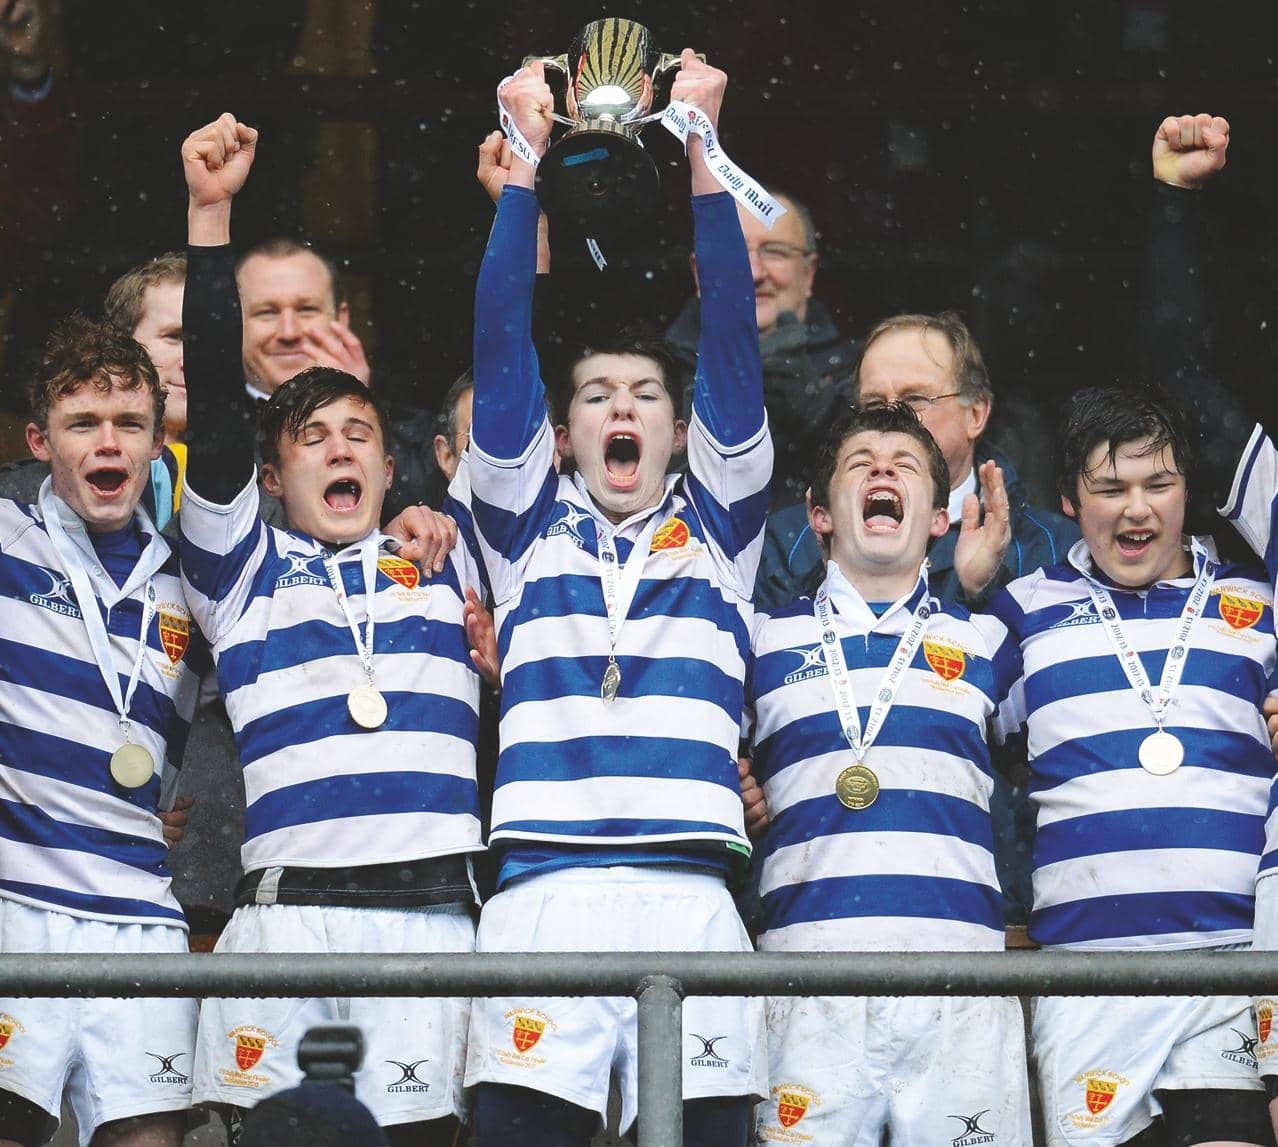 Wonderful Warwick have made a home at Twickers